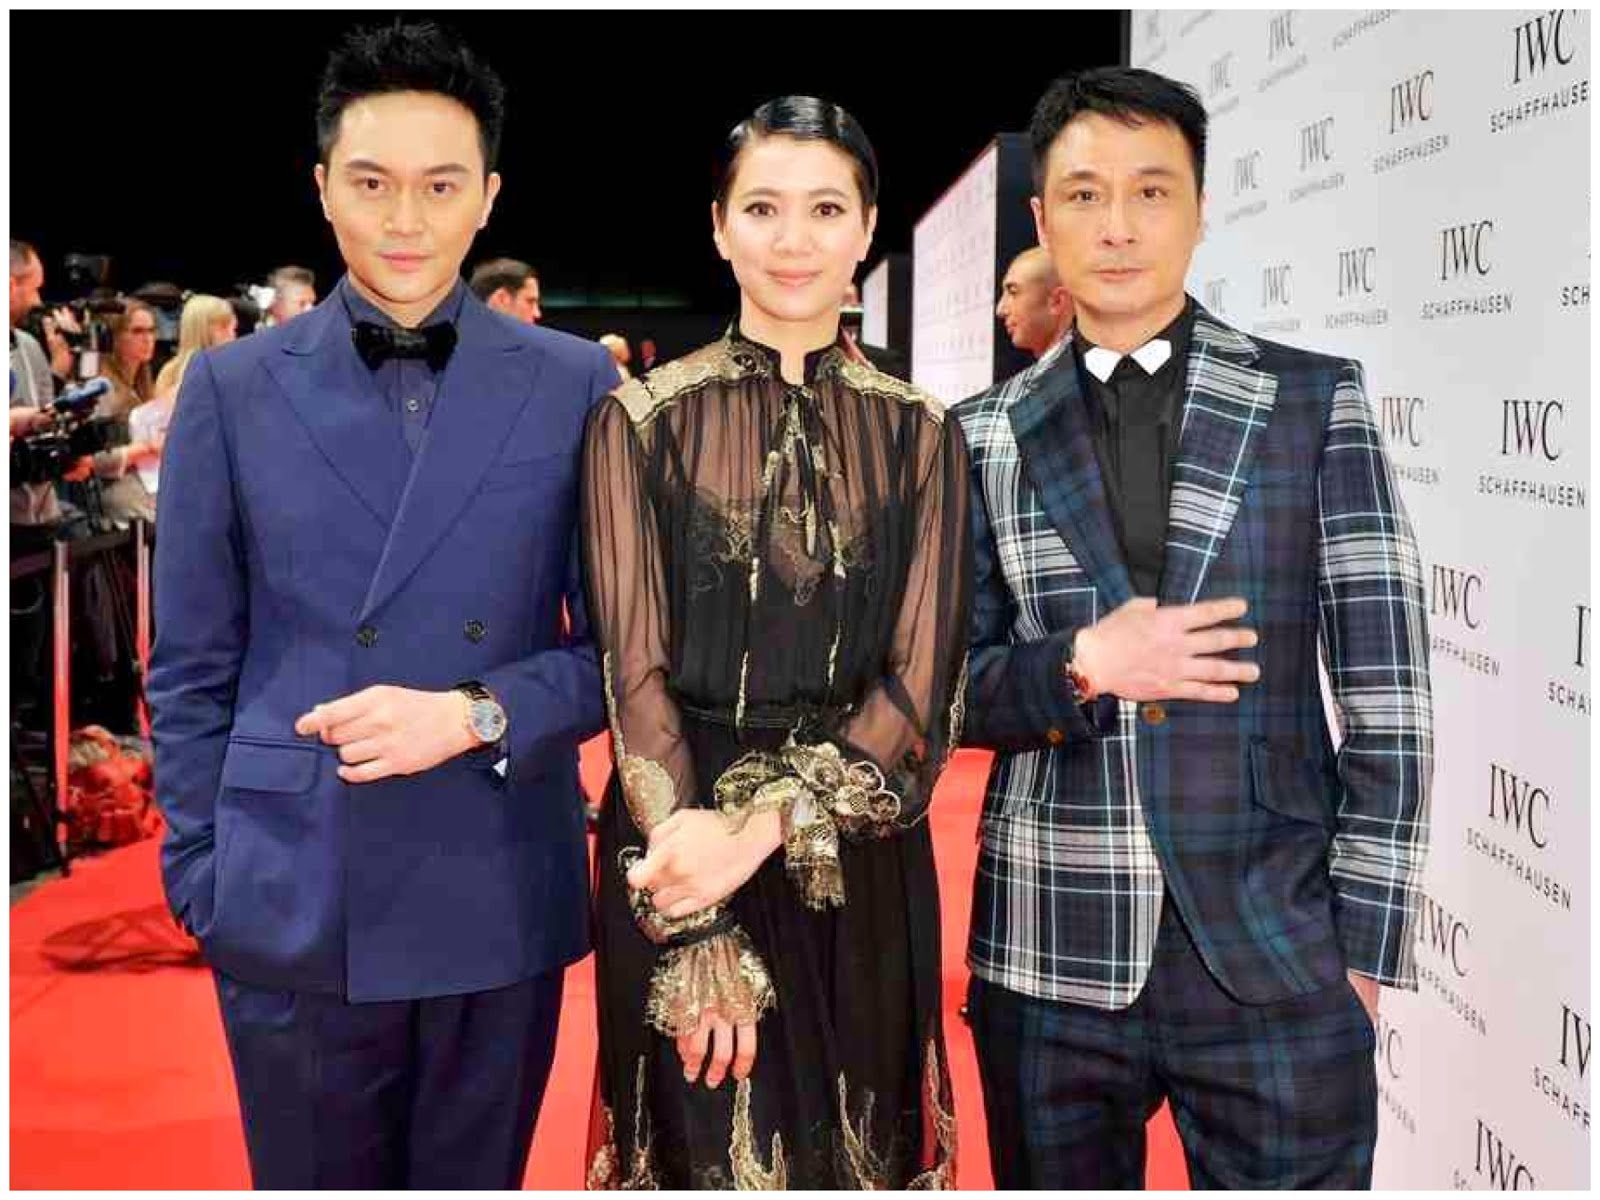 00O00 Menswear blog Francis Ng in Vivienne Westwood - IWC Schaffhausen Race Night Salon International de la Haute Horlogerie #SIHH 2013 Geneva